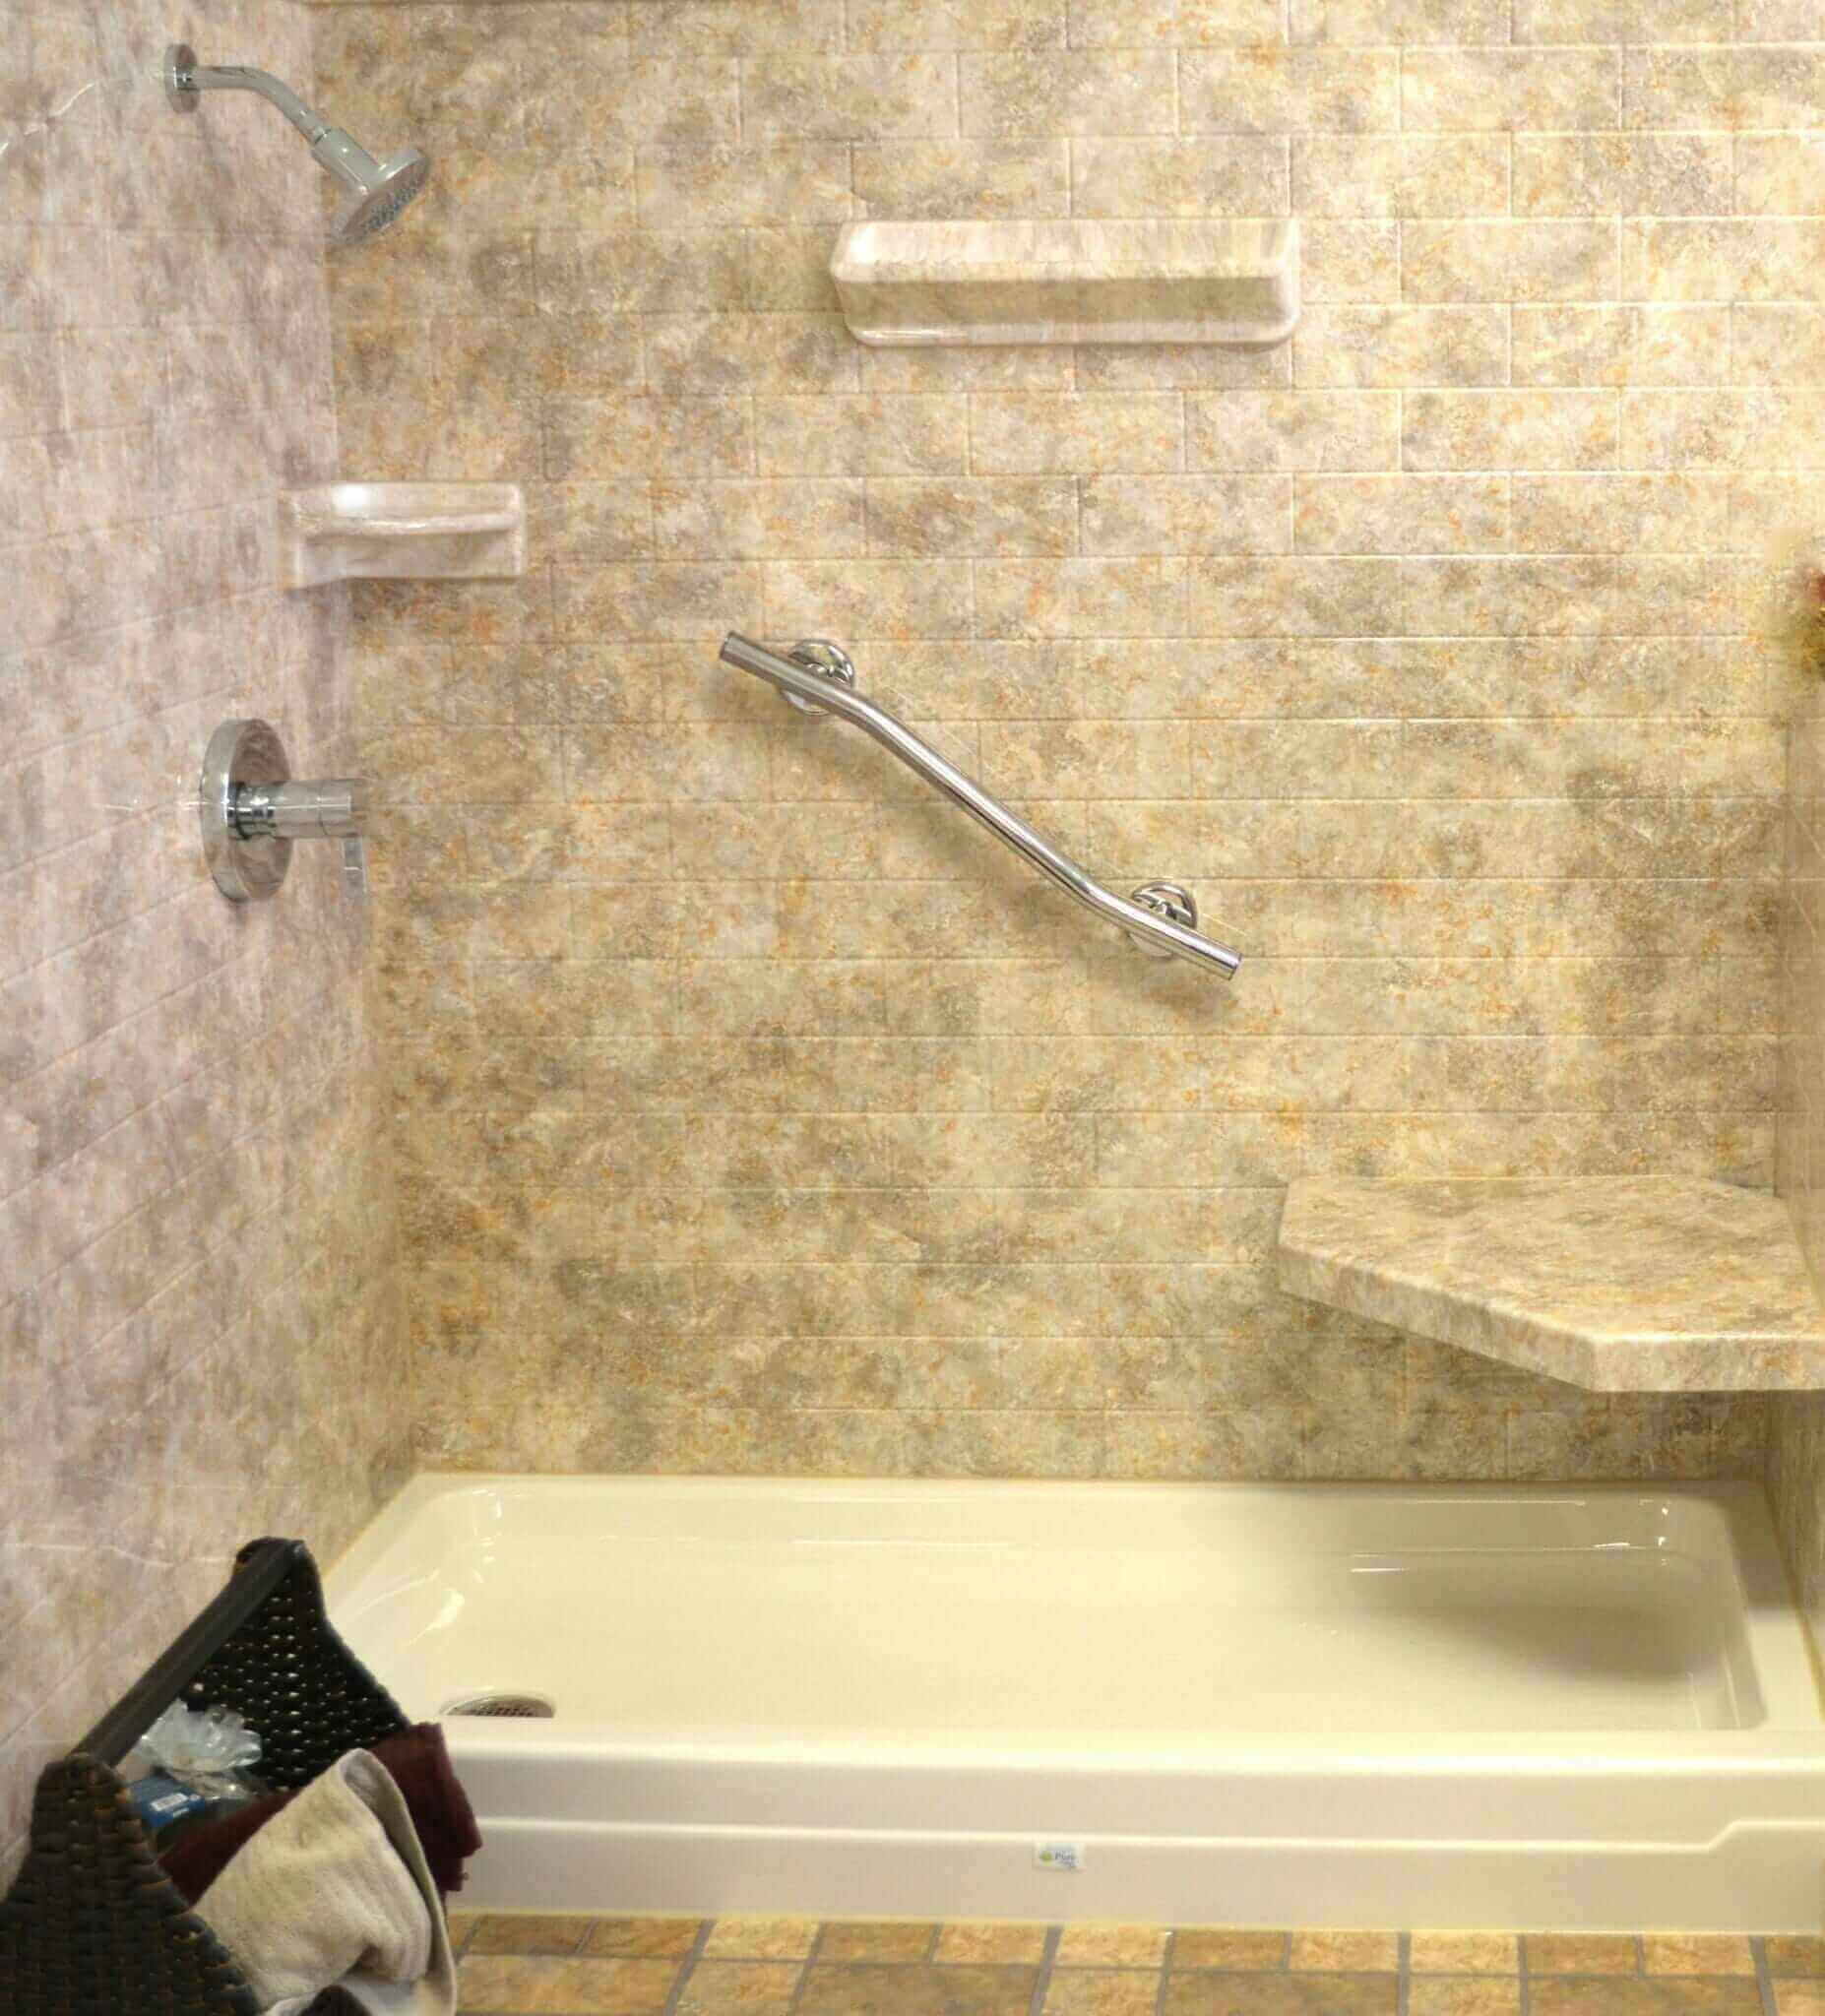 Acrylic Shower Walls Vs Tile Shower Walls